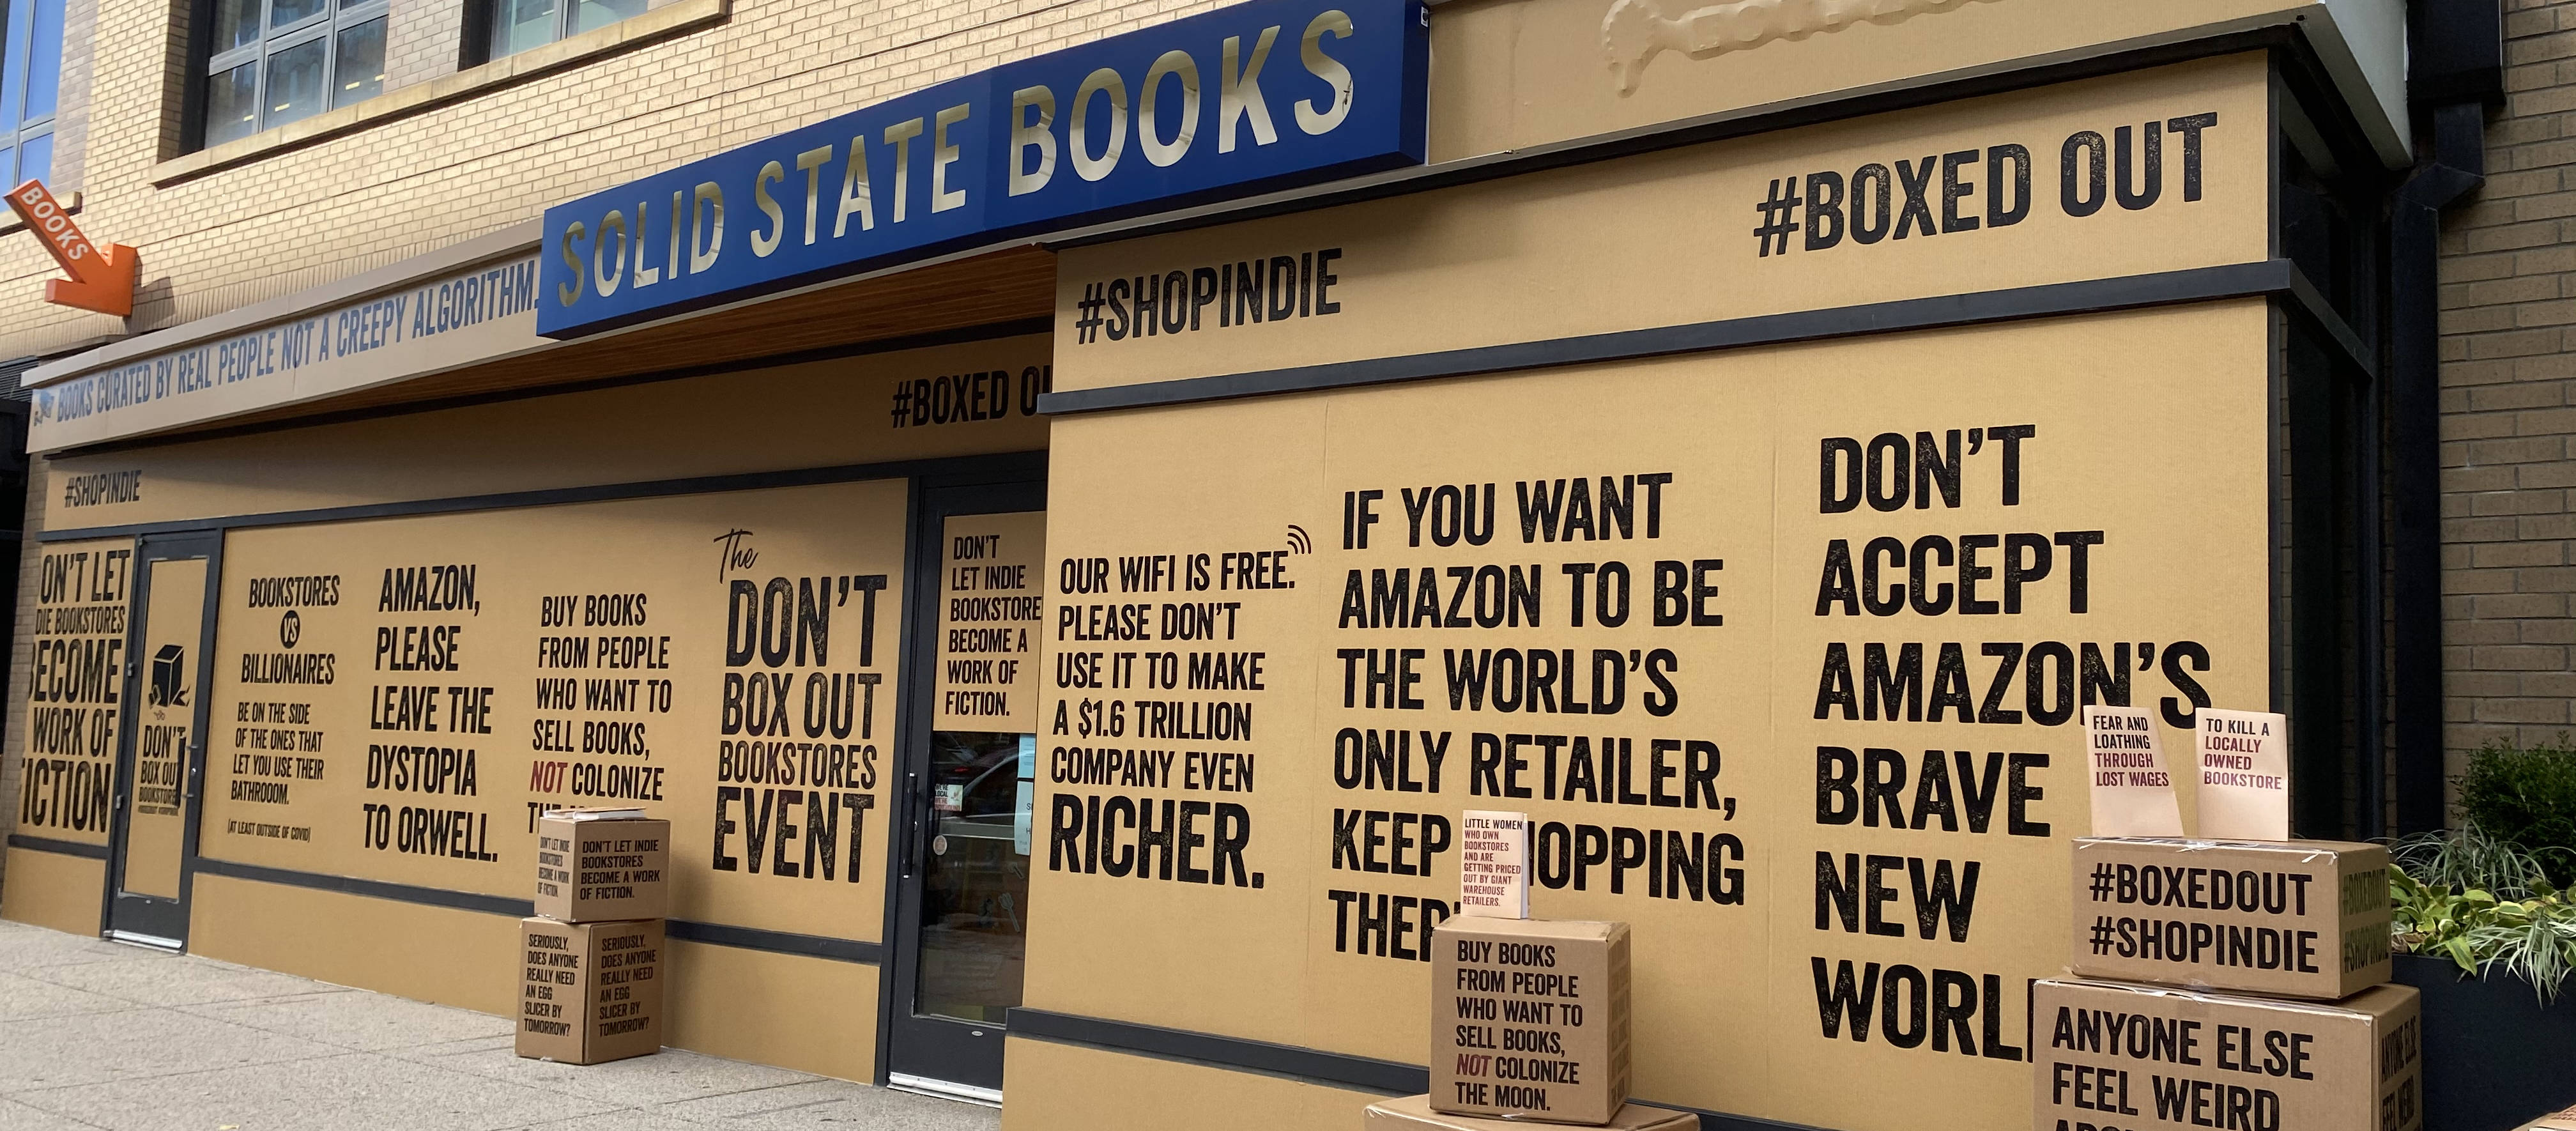 """In October 2020, Solid State Books in Washington participated in the """"Boxed Out"""" marketing campaign, which criticized Amazon's position in the book market. (Courtesy of the American Booksellers Association)"""